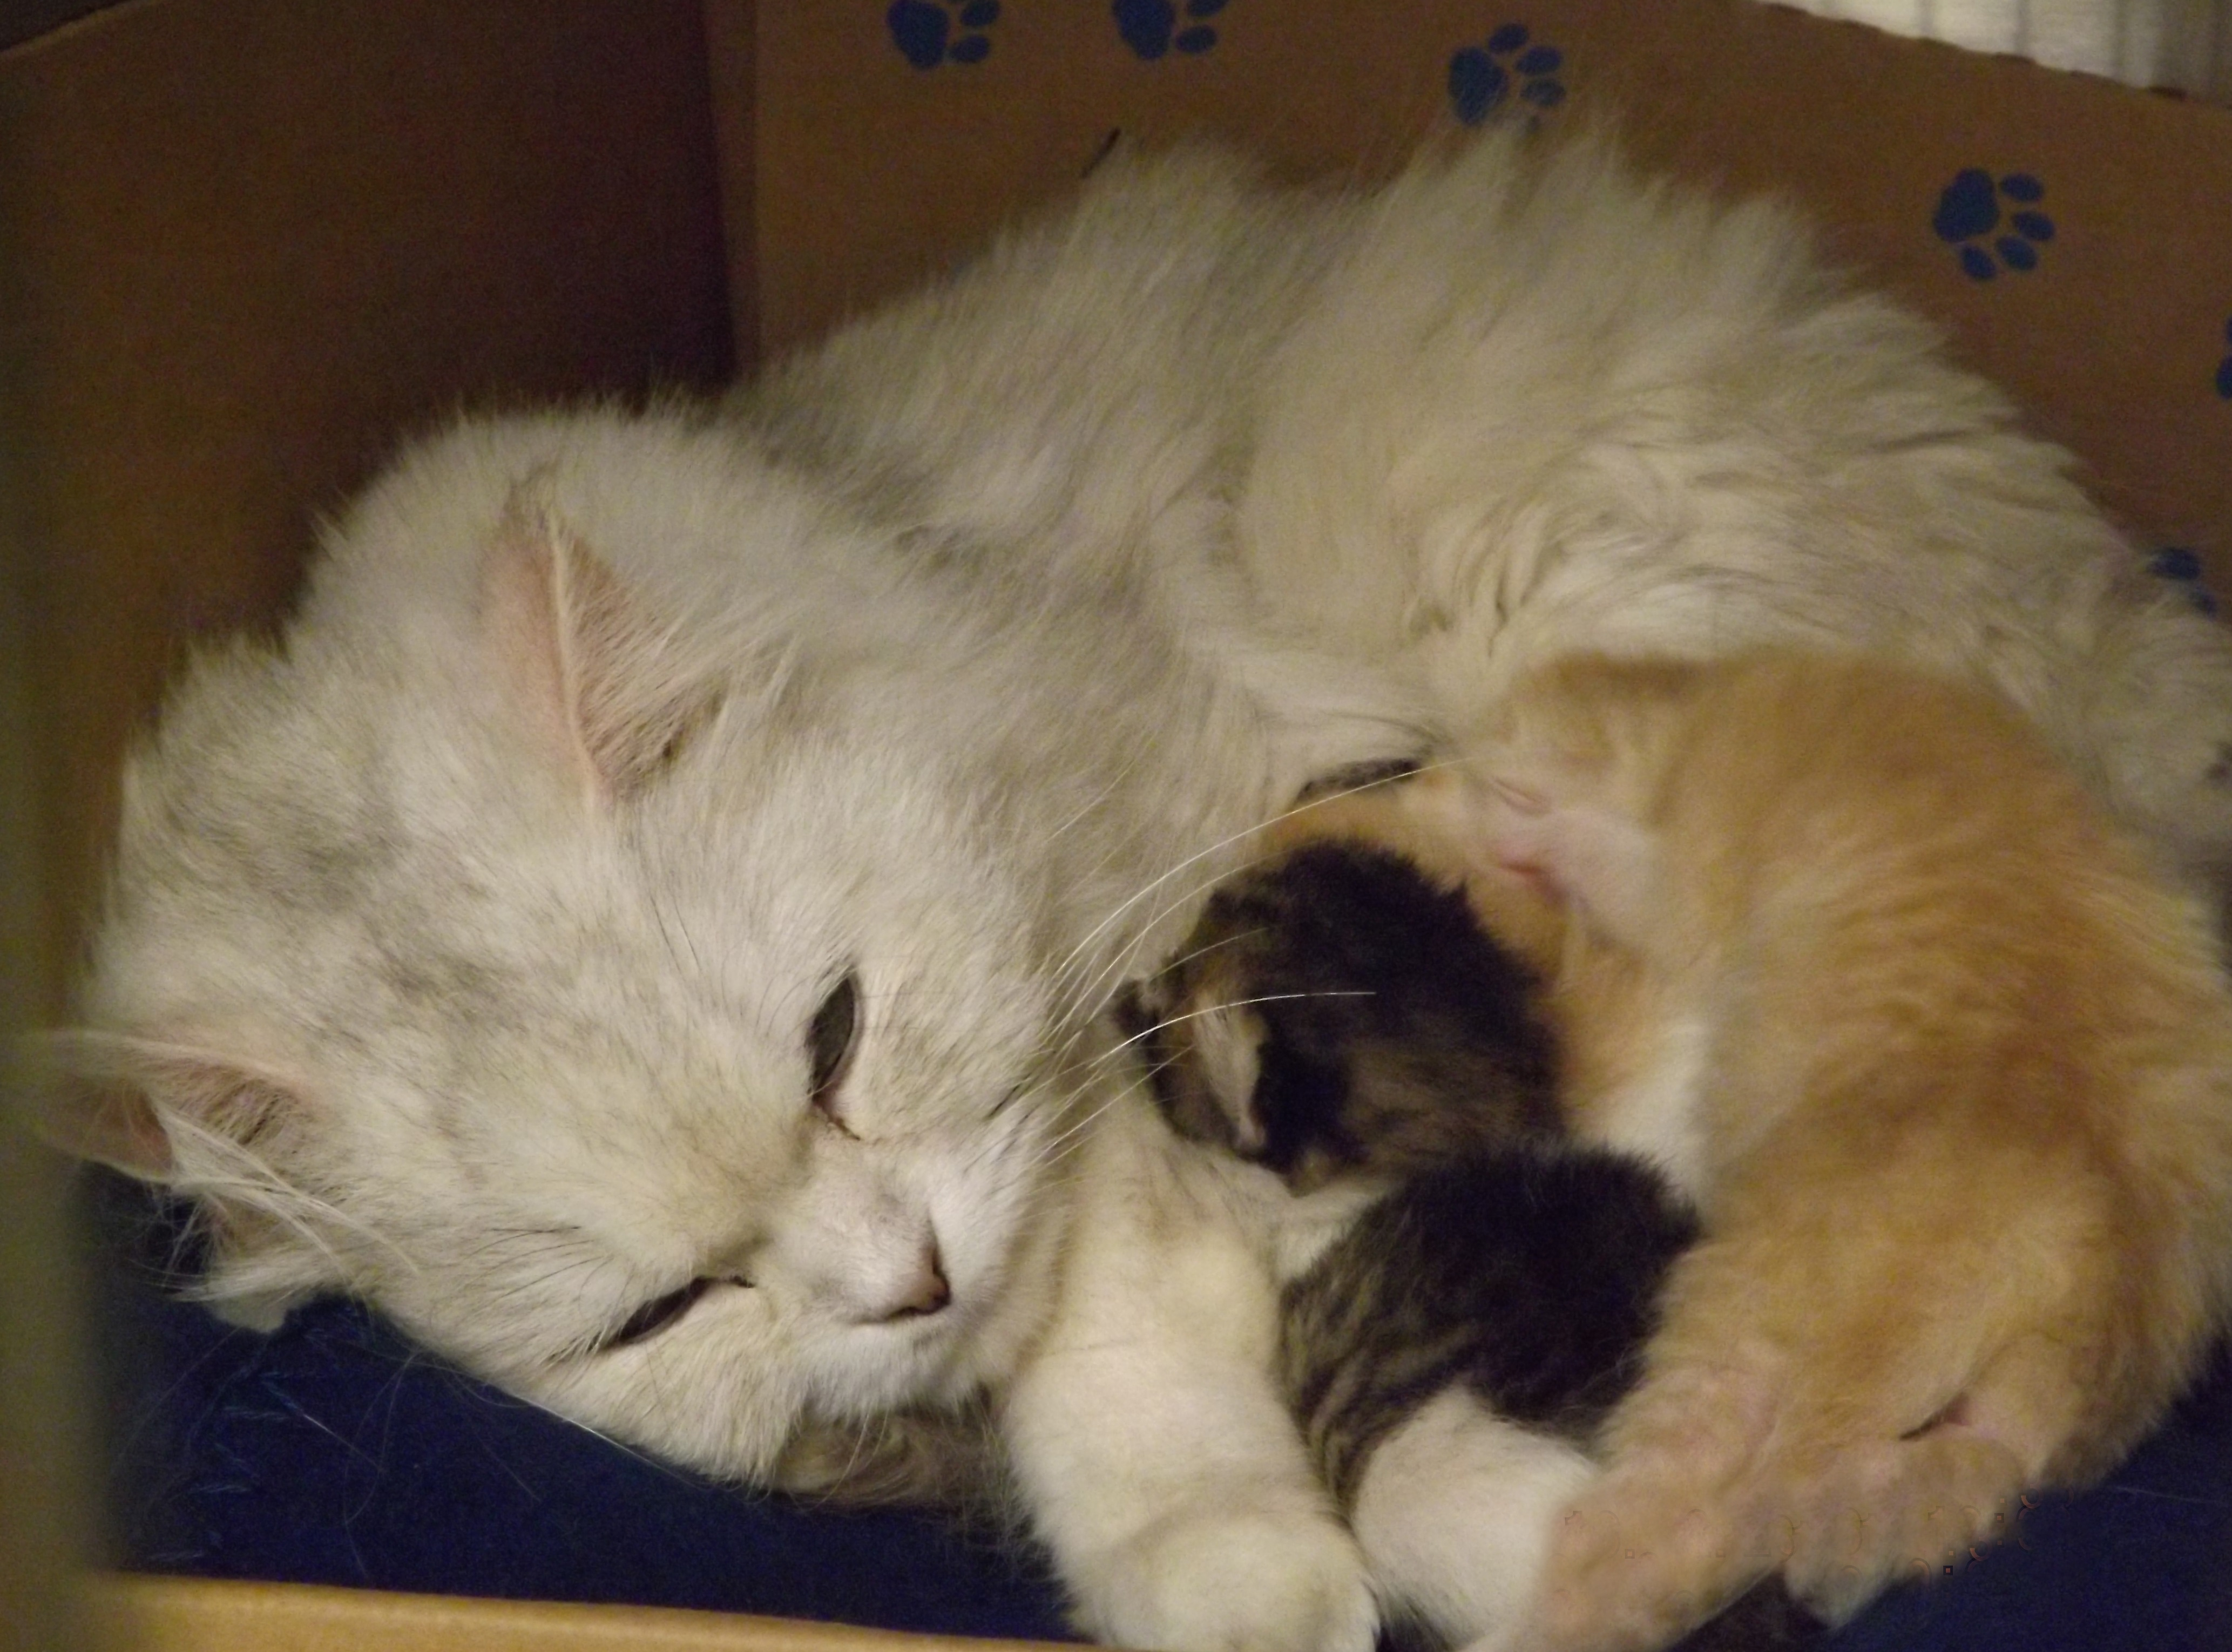 New protections for BC cats, dogs in wake of animal abuse cases